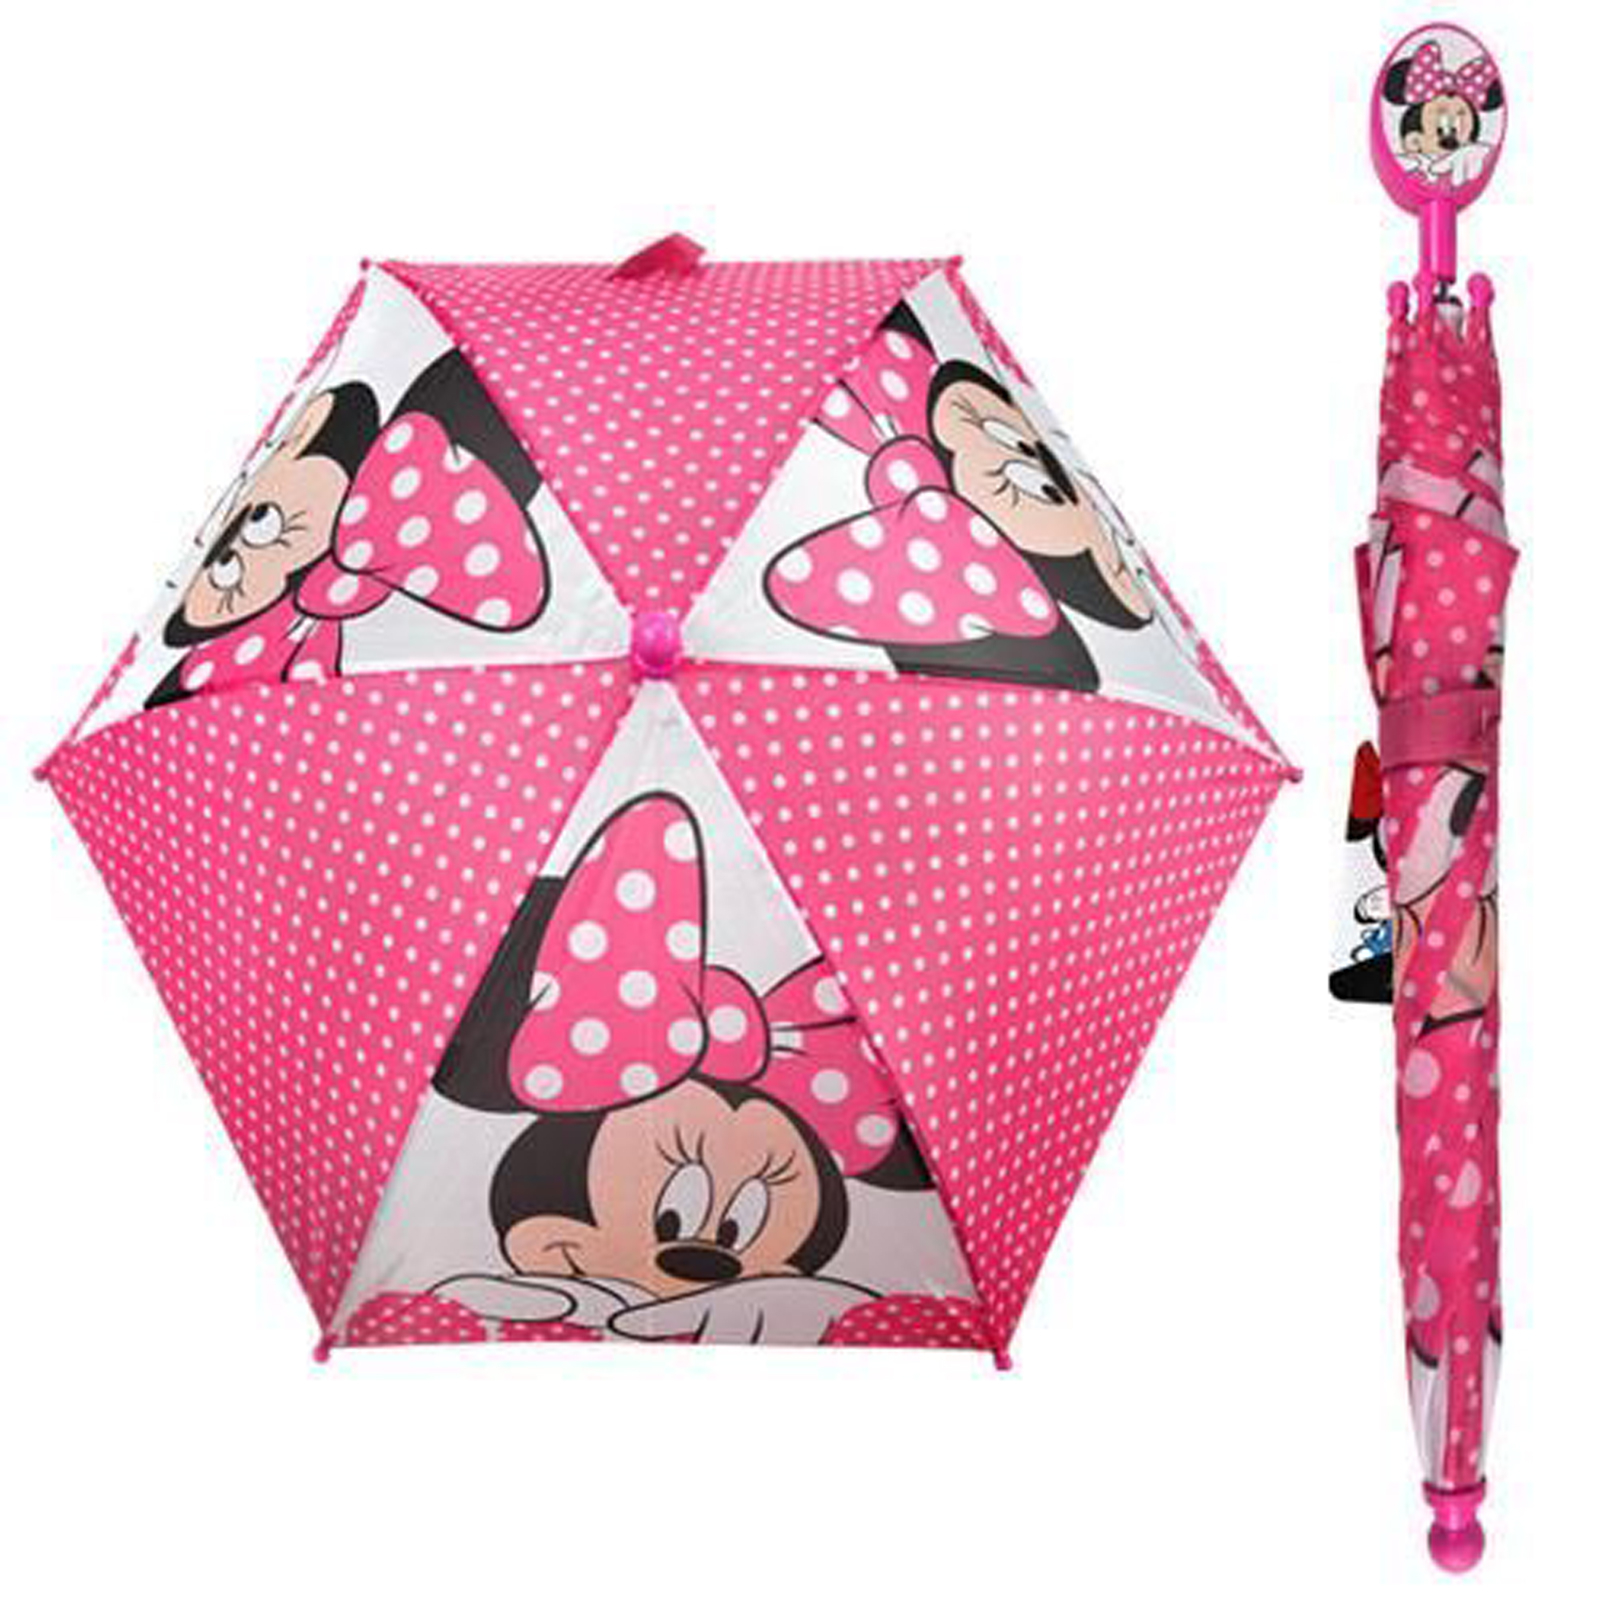 Minnie Mouse Kids Umbrella With Clamshell Handle